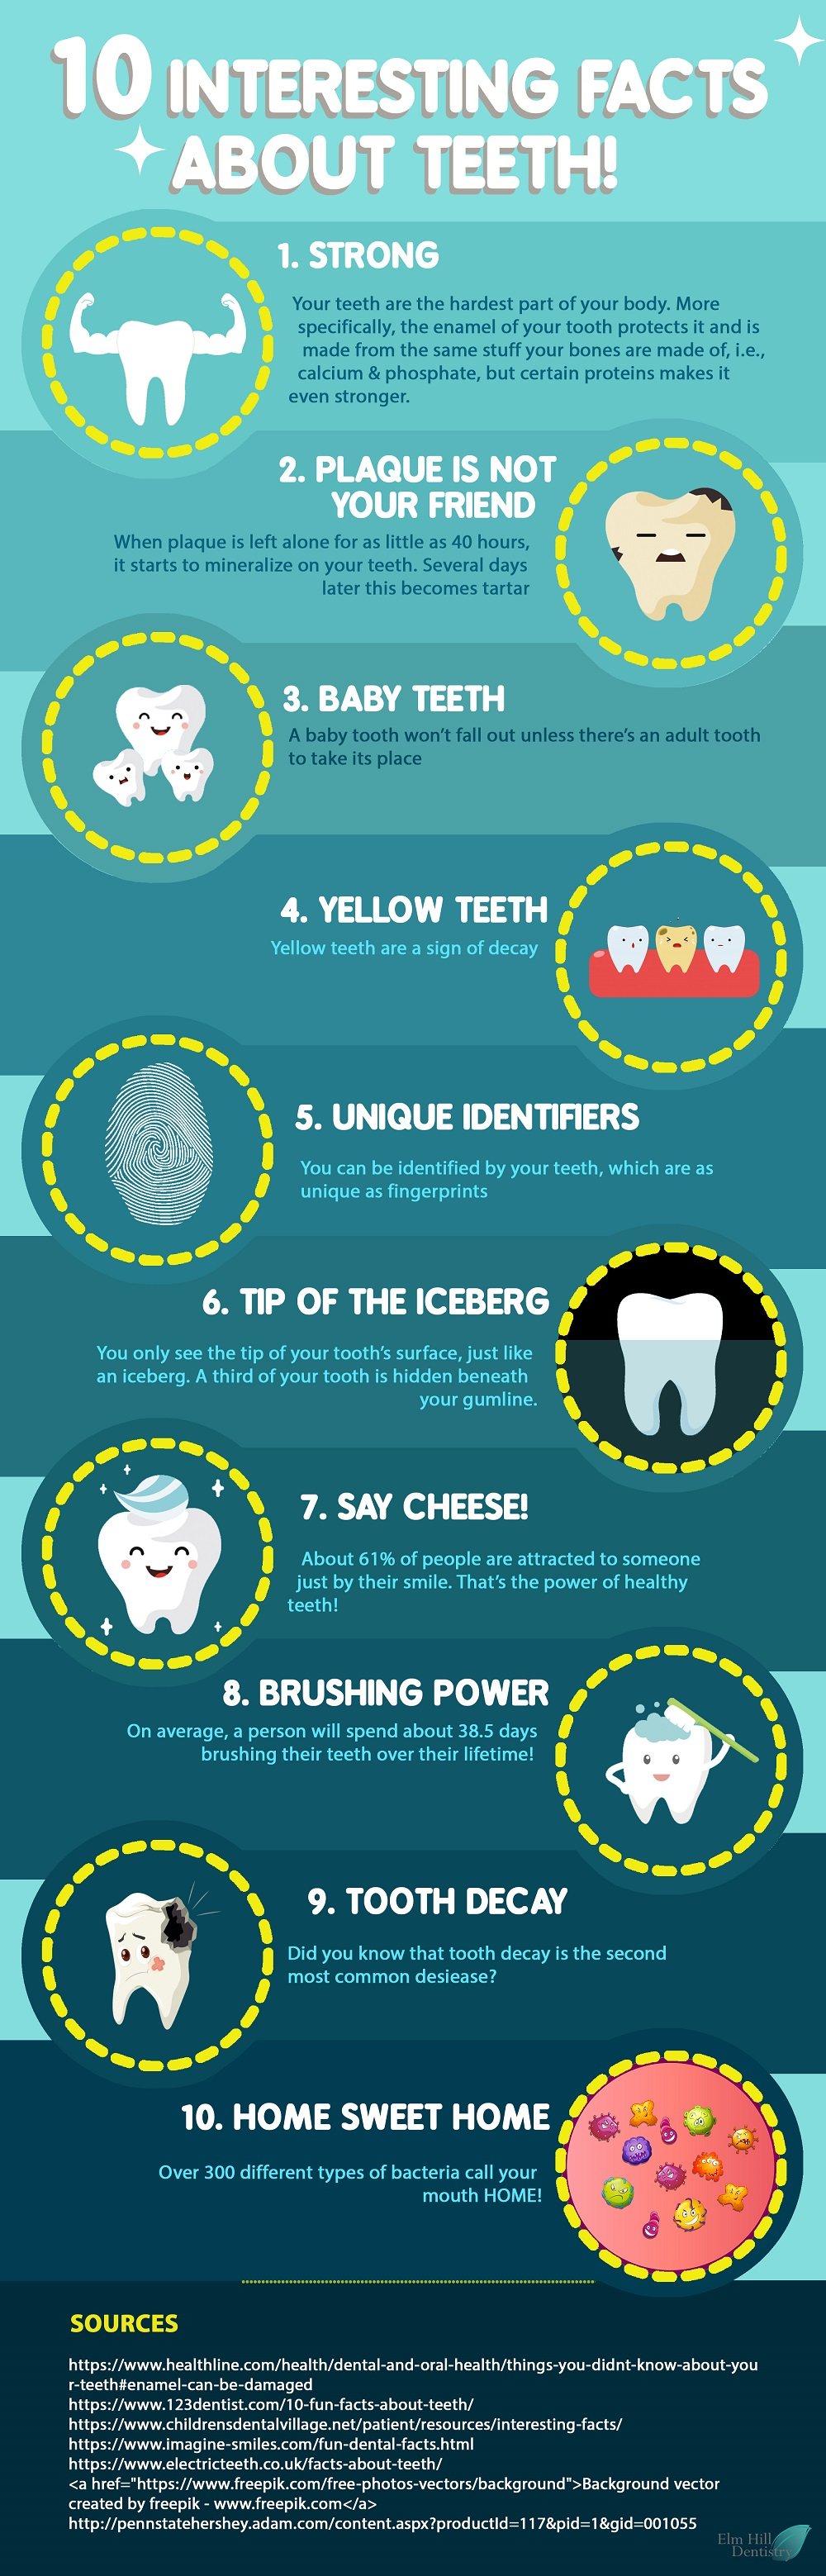 10 Interesting Facts About Teeth Infographic